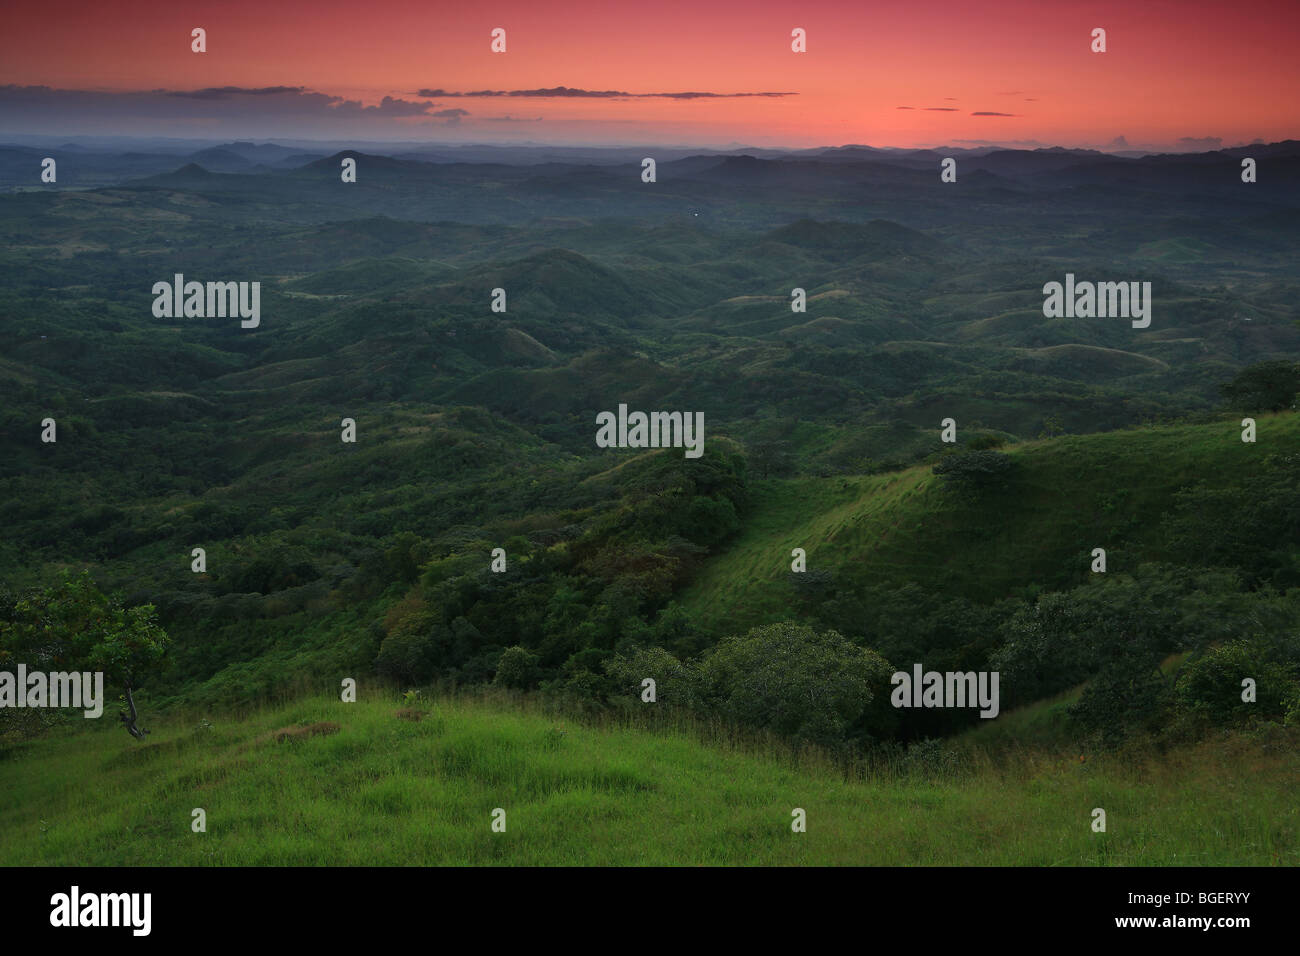 Green fields and hills near Ola, Cordillera Central, in the Cocle province, Republic of Panama. - Stock Image